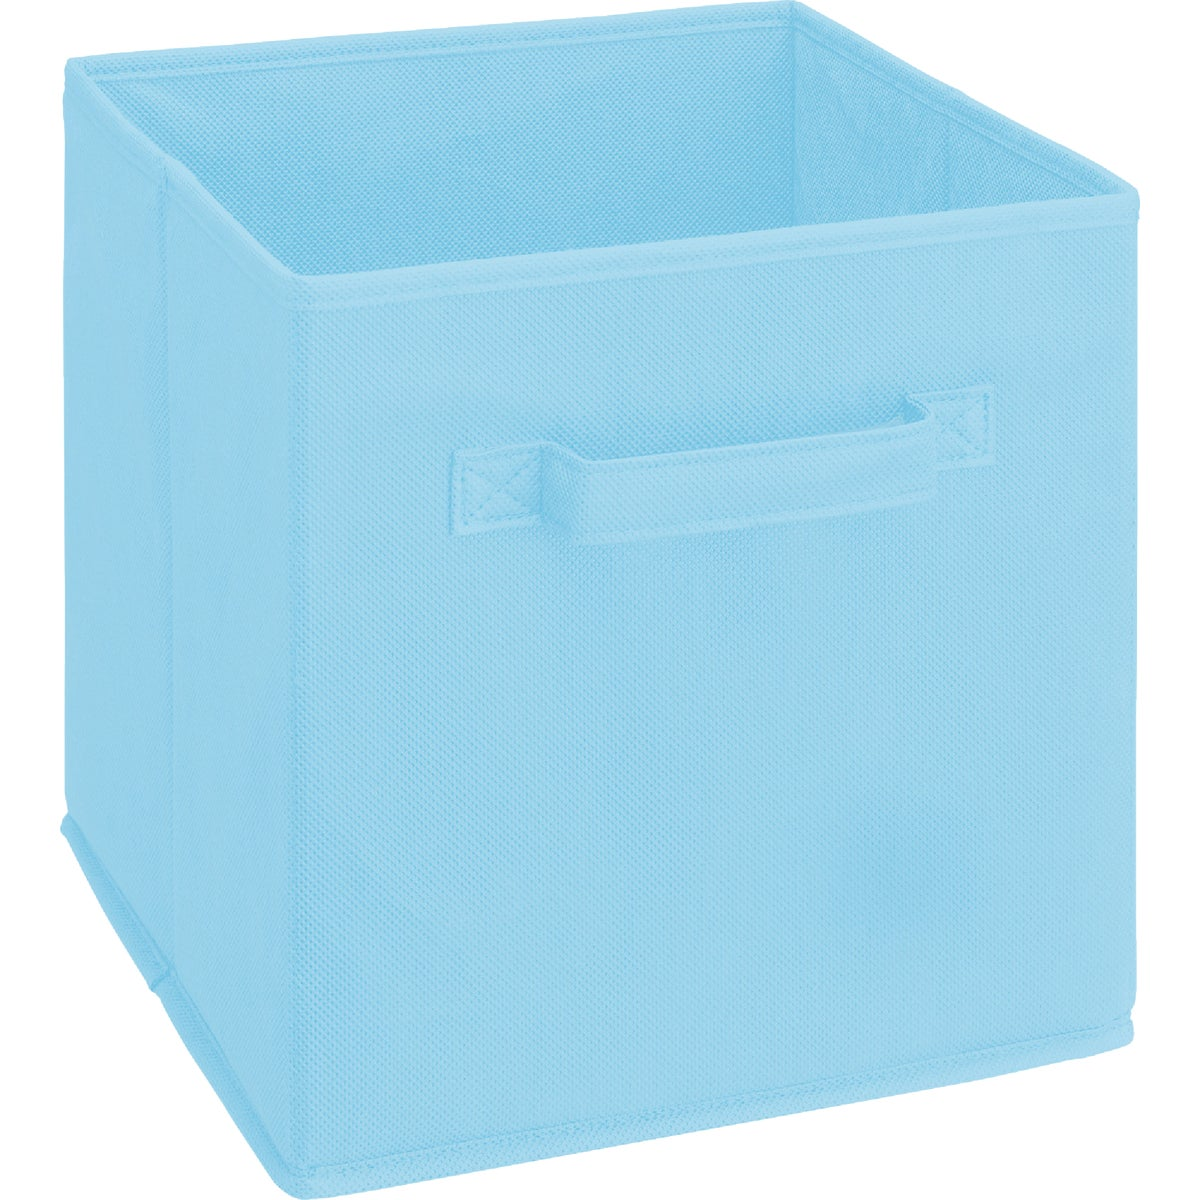 LT BLUE FABRIC DRAWER